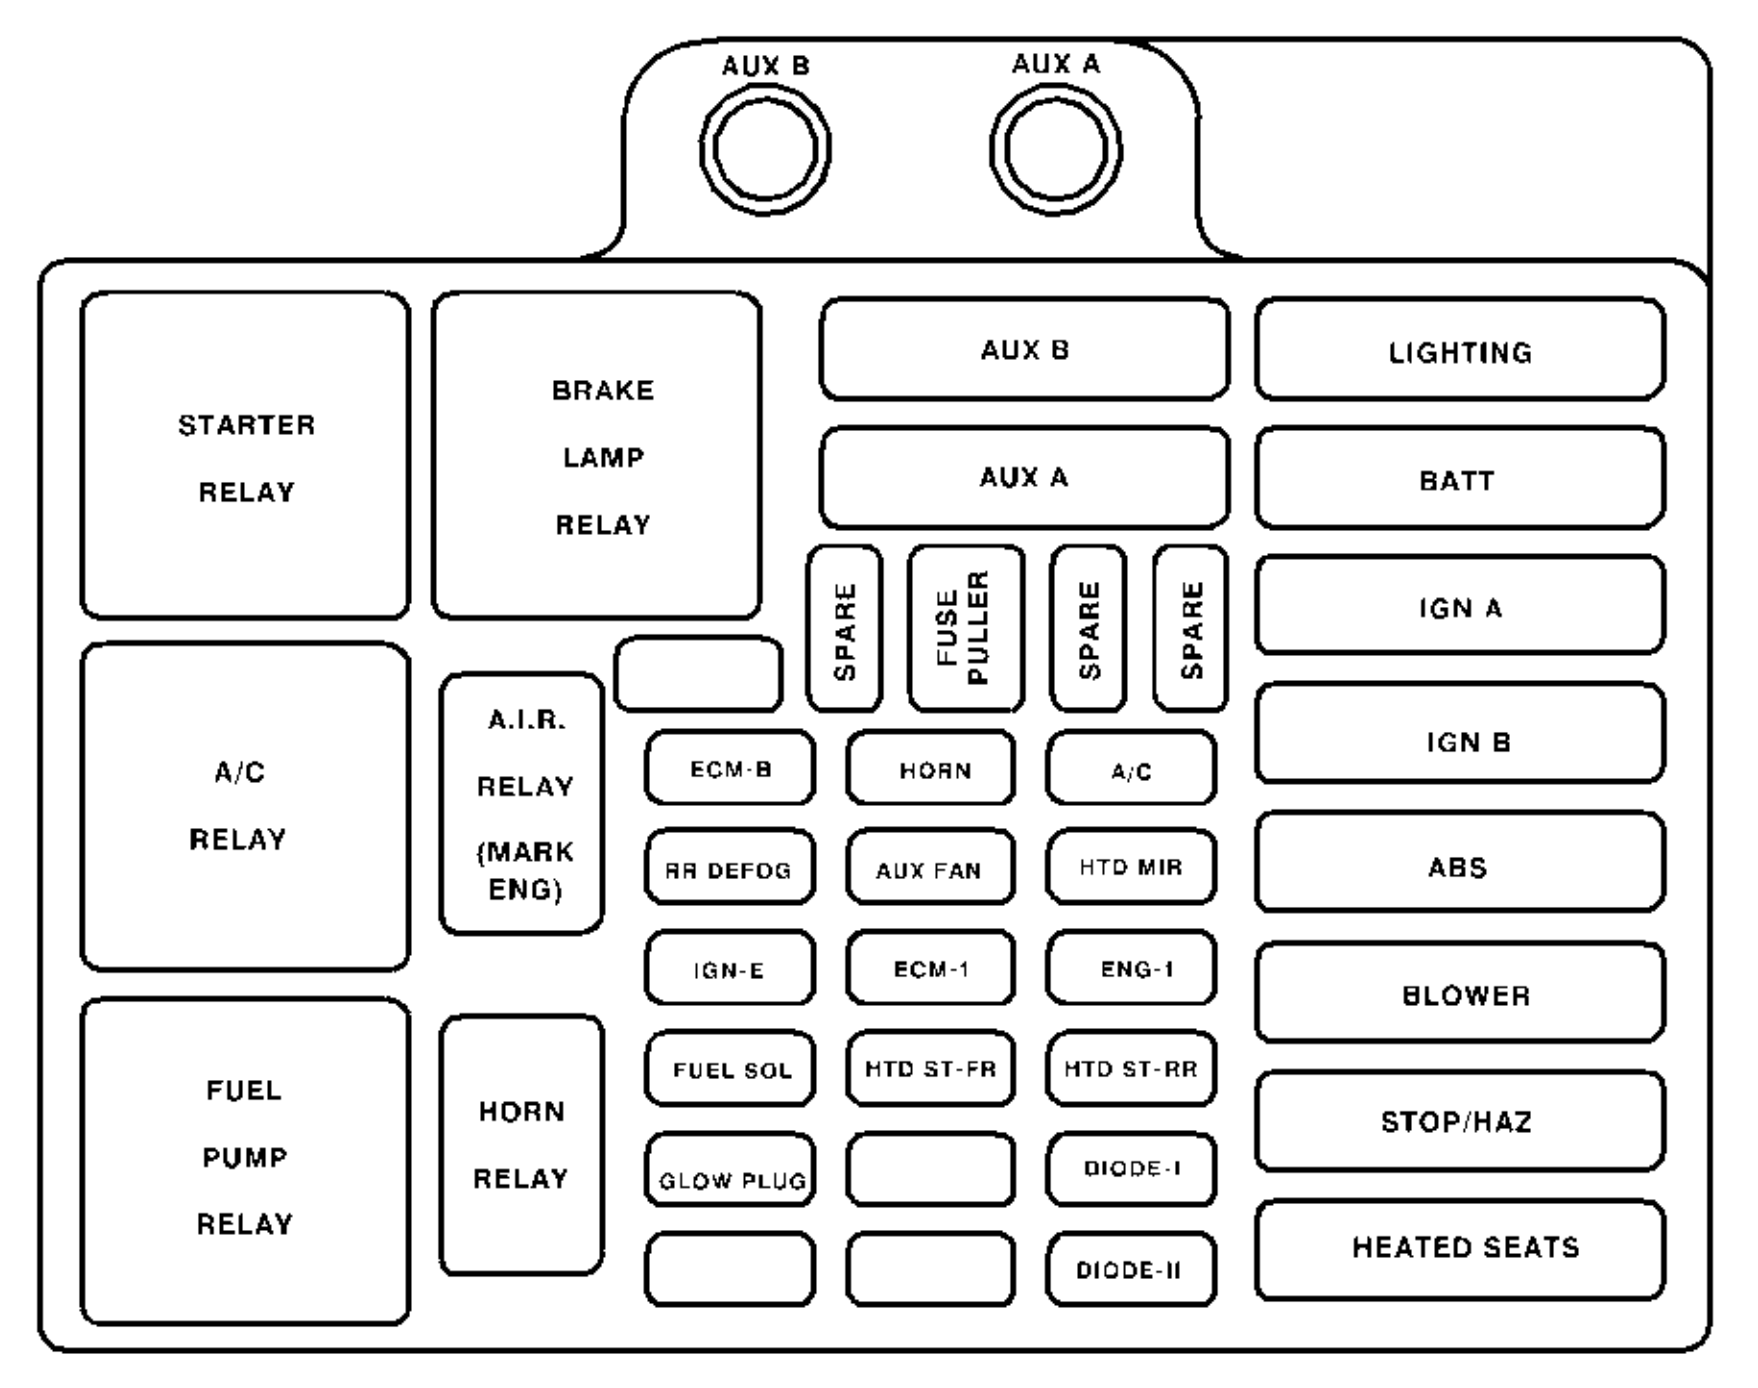 hight resolution of tahoe fuse box diagram wiring diagram expert 2008 chevy tahoe fuse diagram